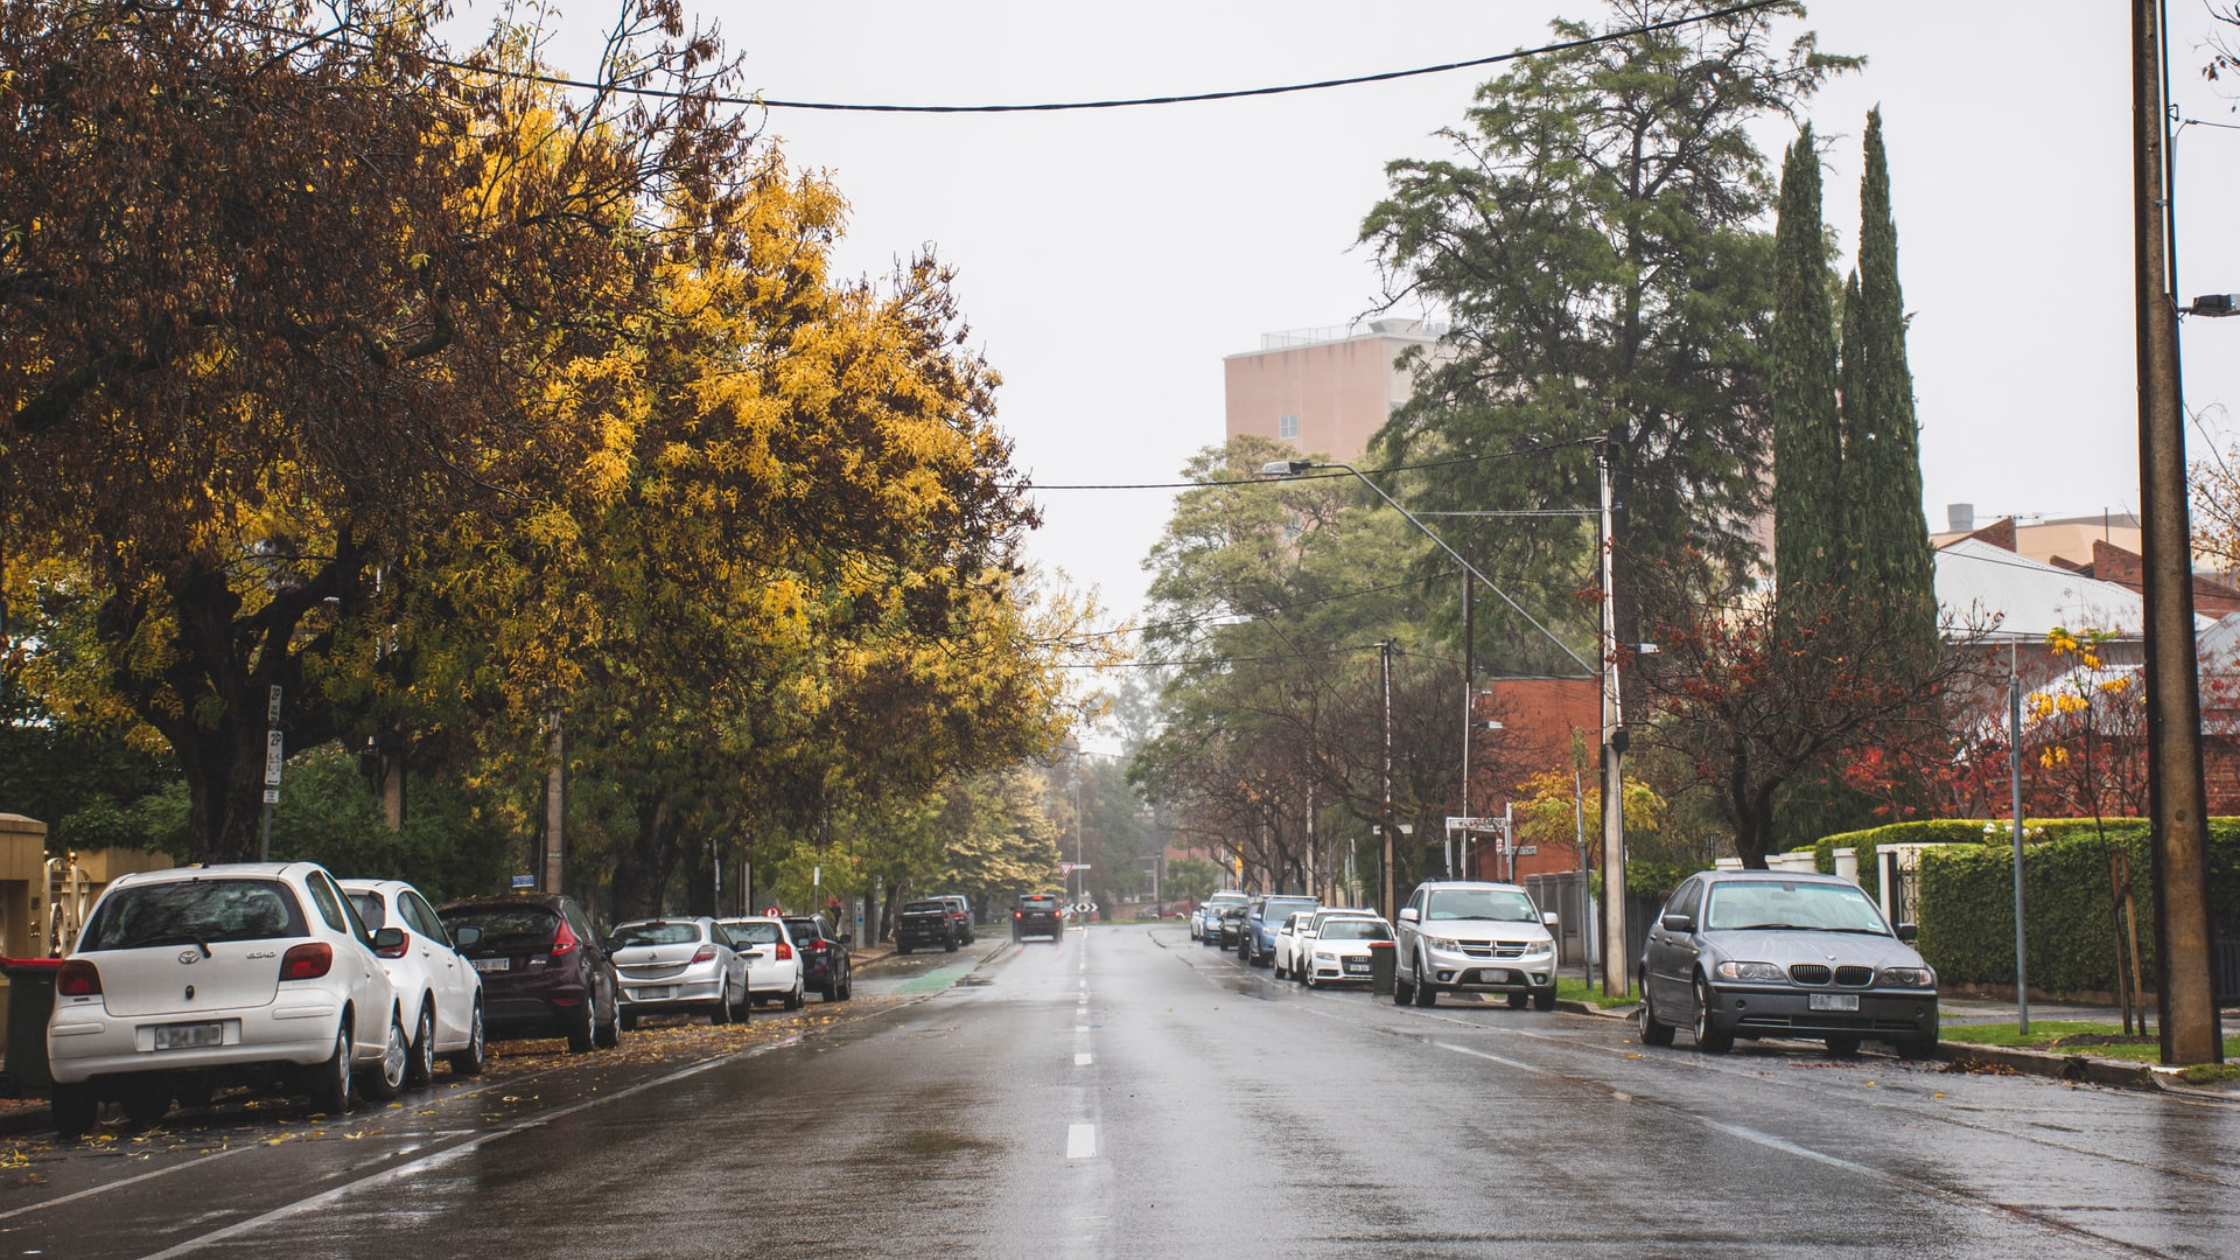 Photo of an Adelaide city street lined with parked cars and trees. There is a tall building in the background and it is raining